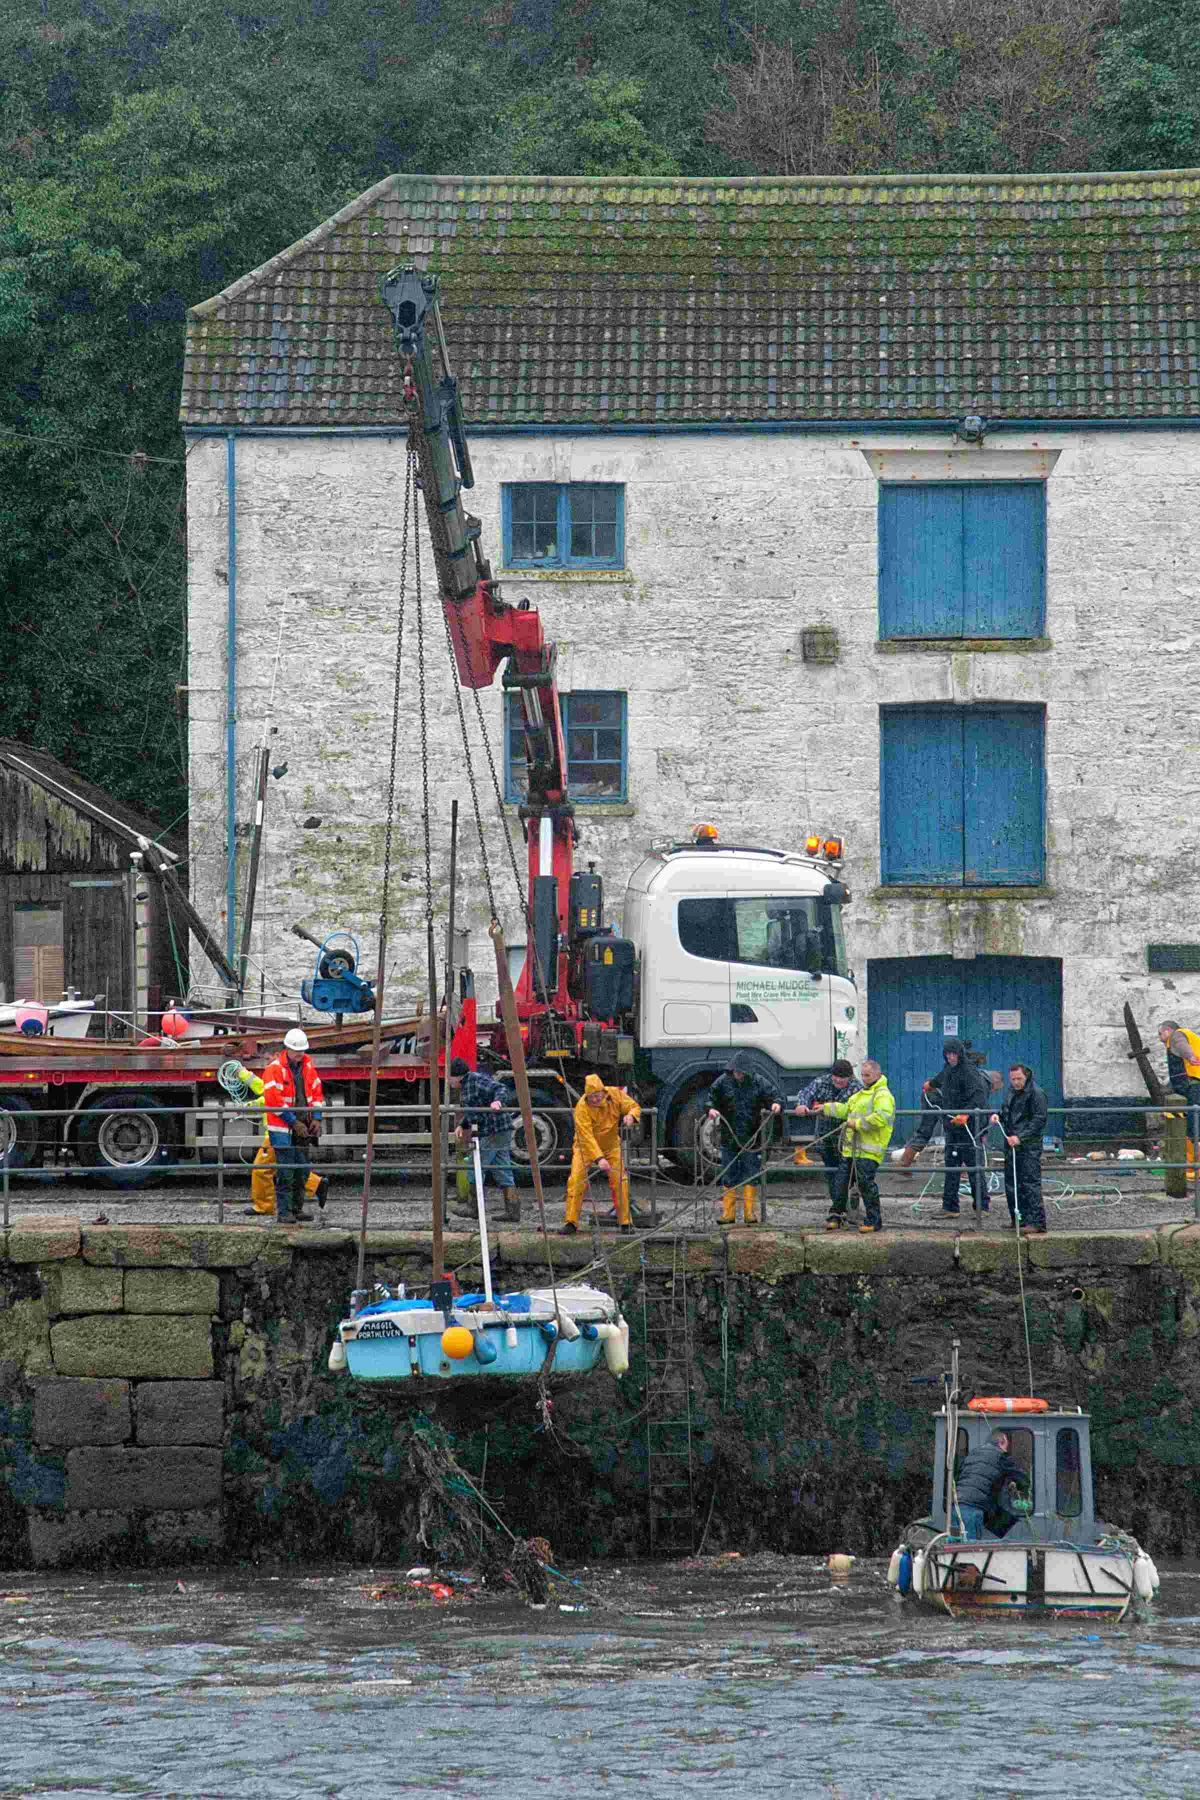 Cost of Porthleven harbour storm damage tops £100,000